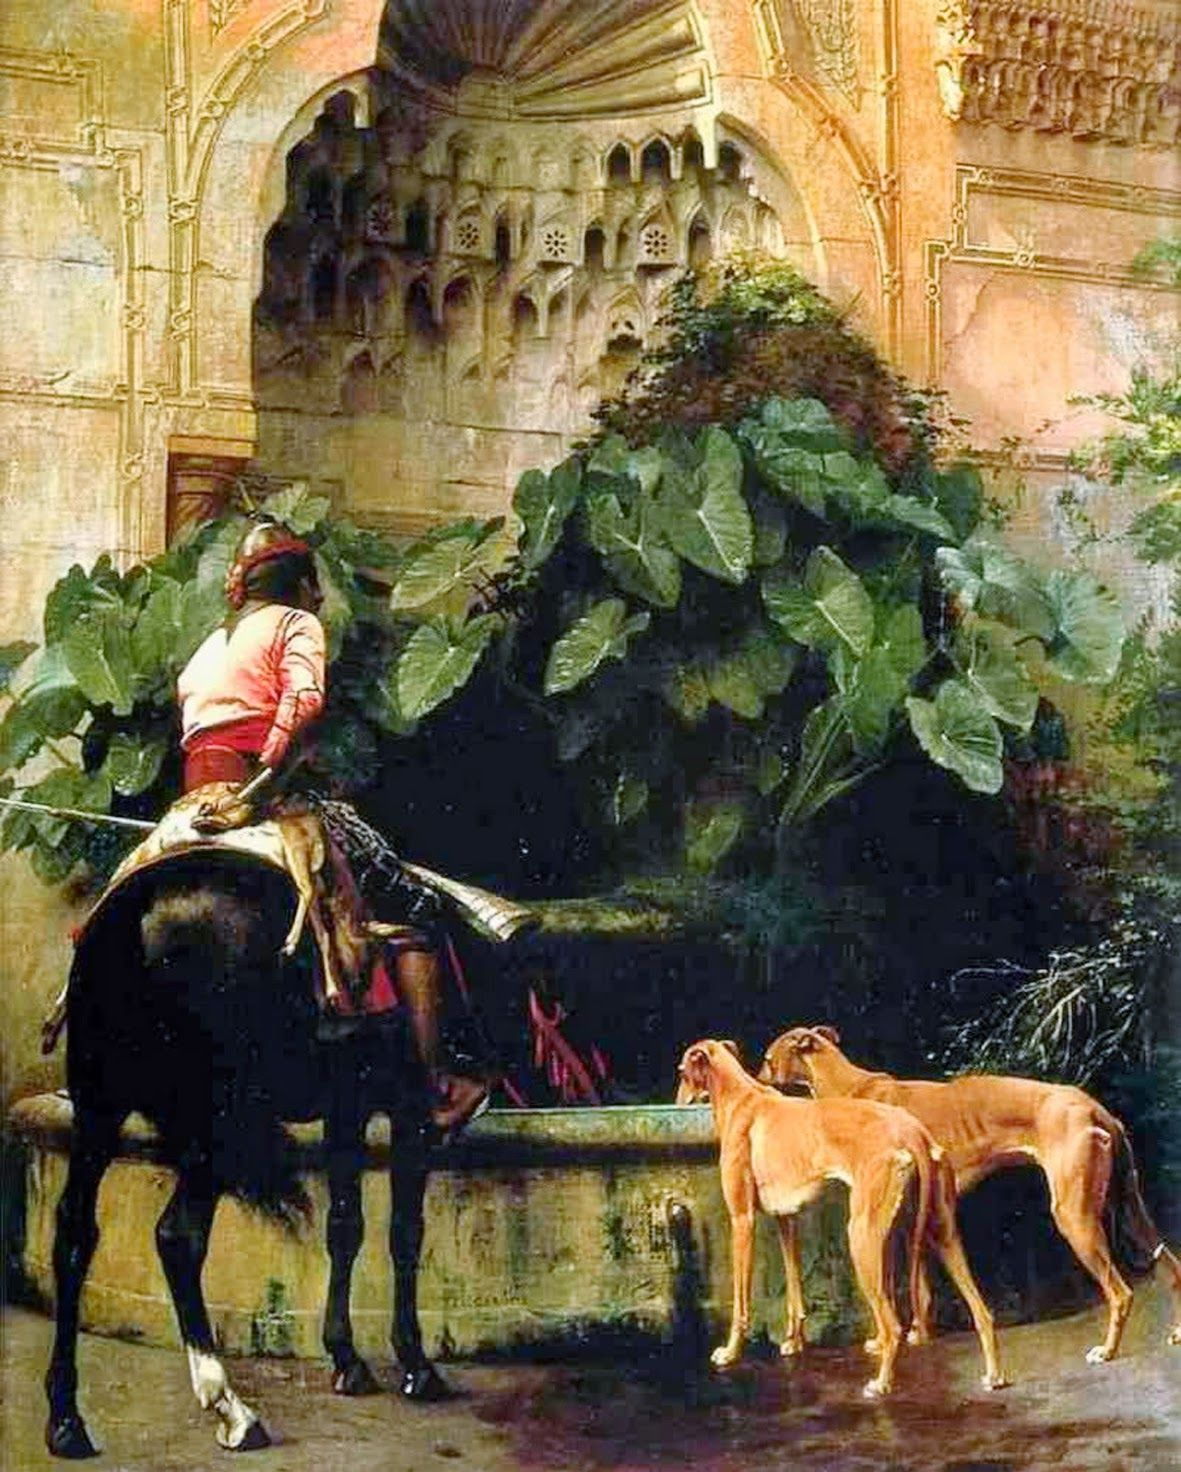 Home From The Hunt - Jean-Leon Gerome